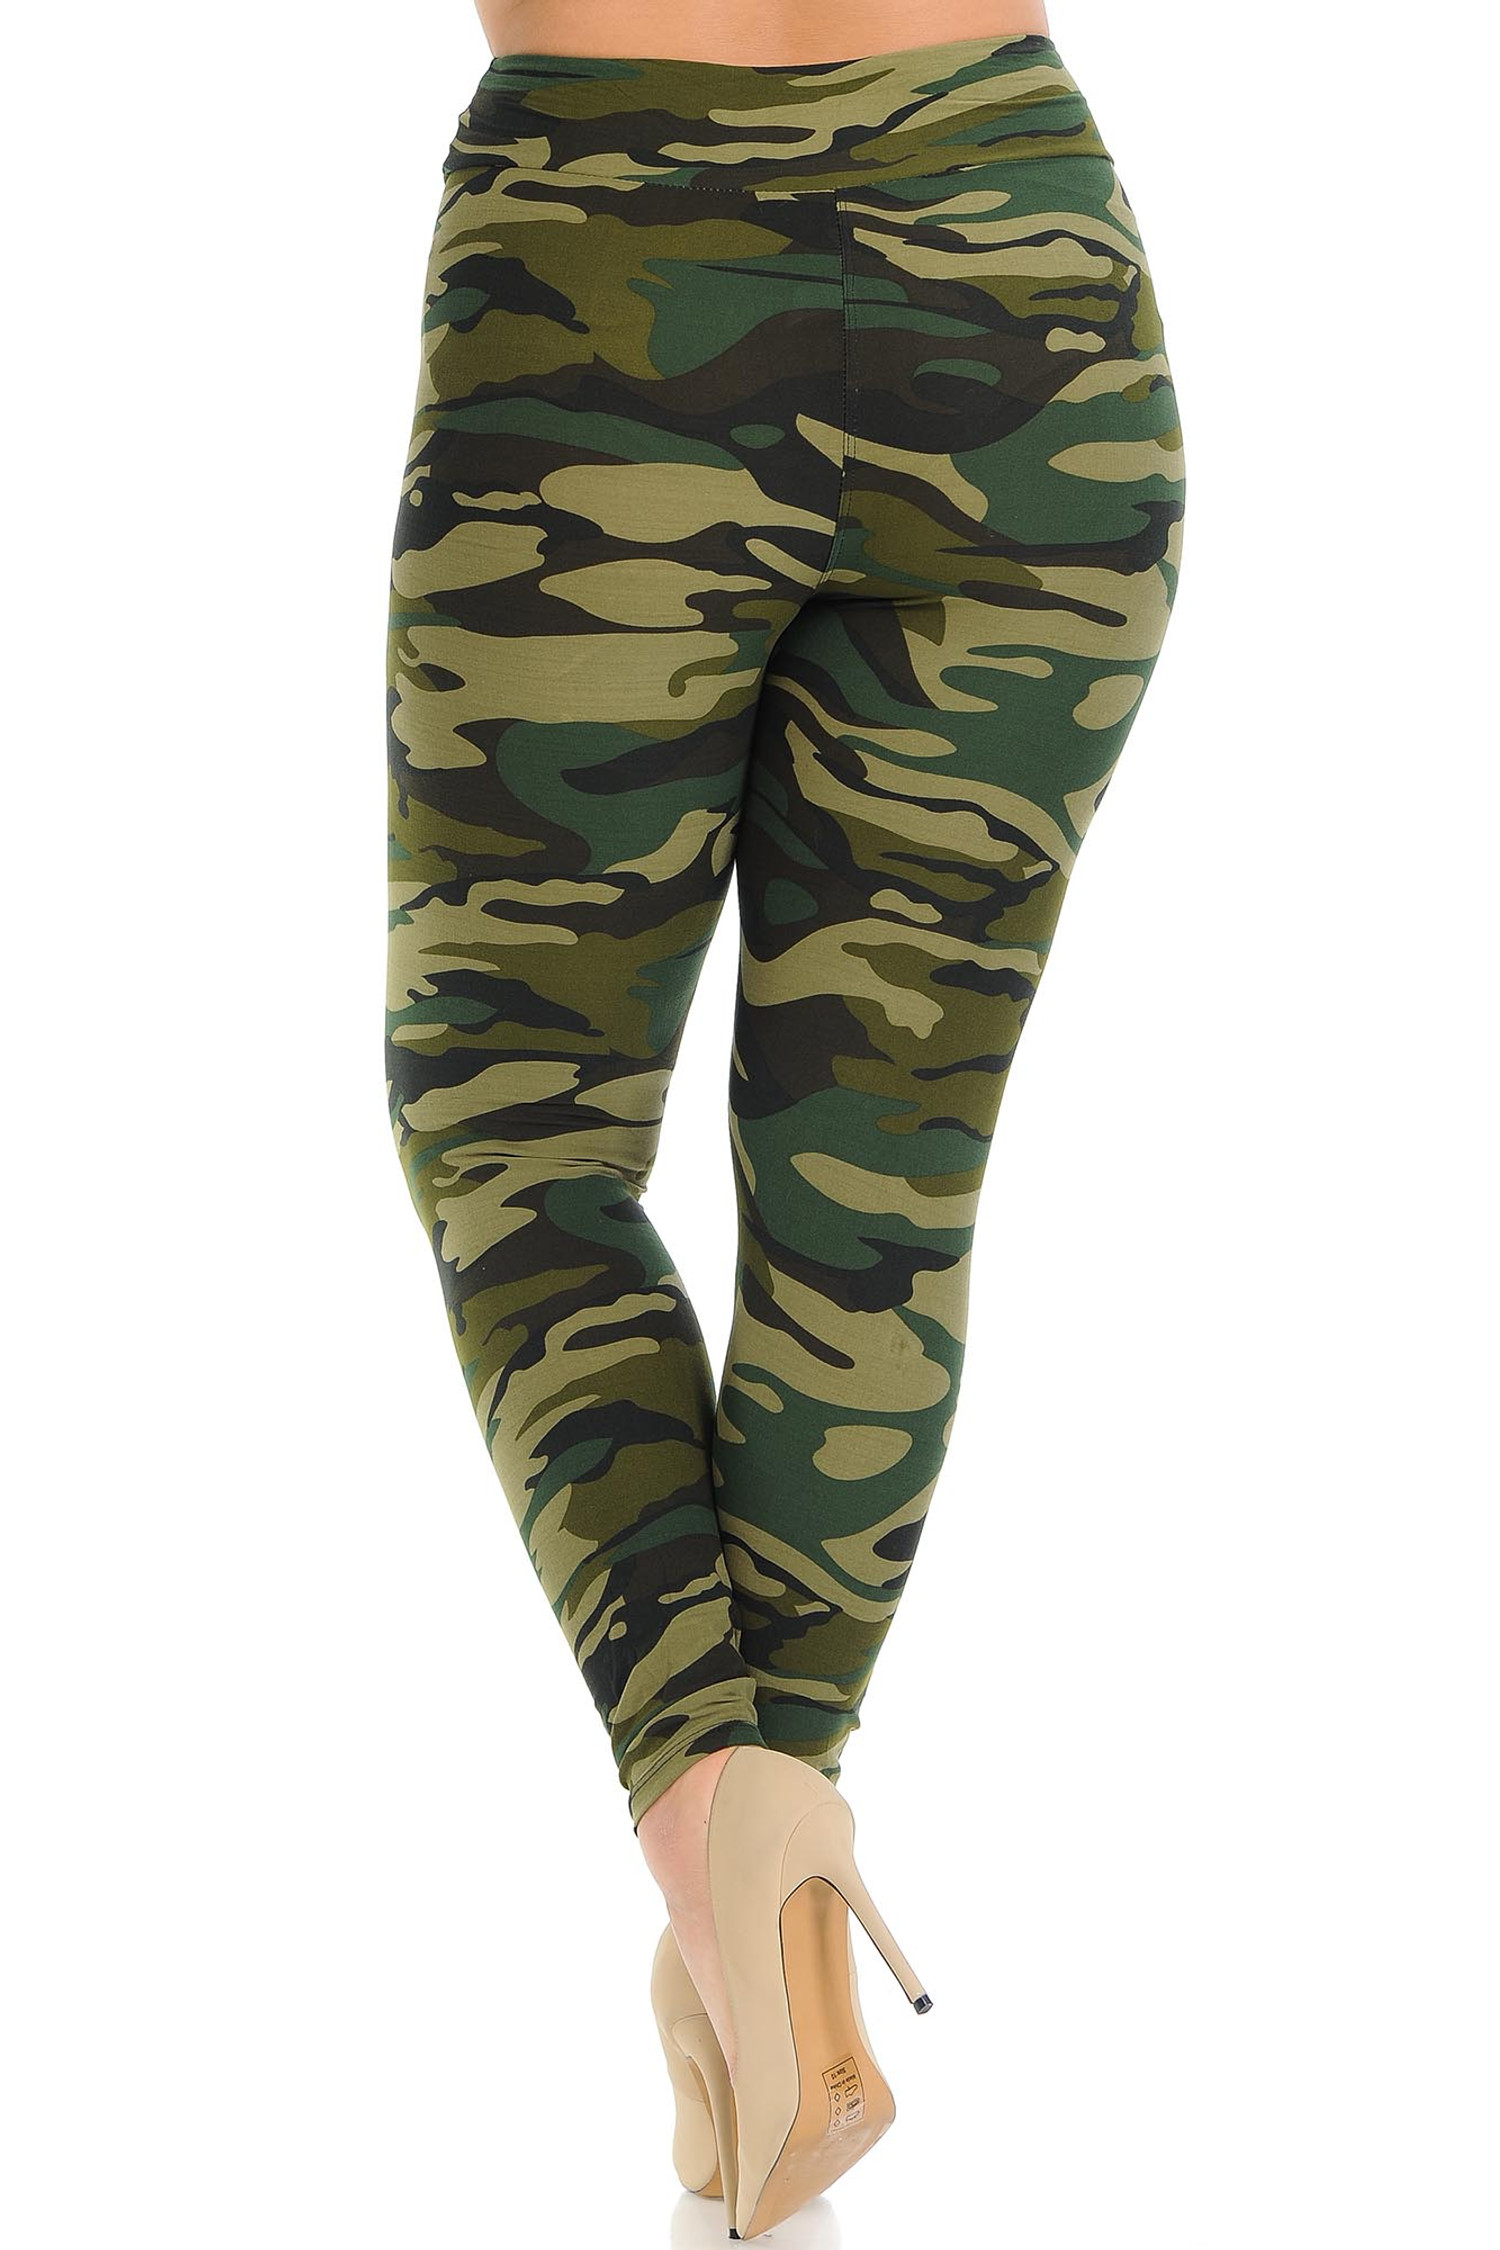 Brushed  Green Camouflage High Waisted Plus Size Leggings